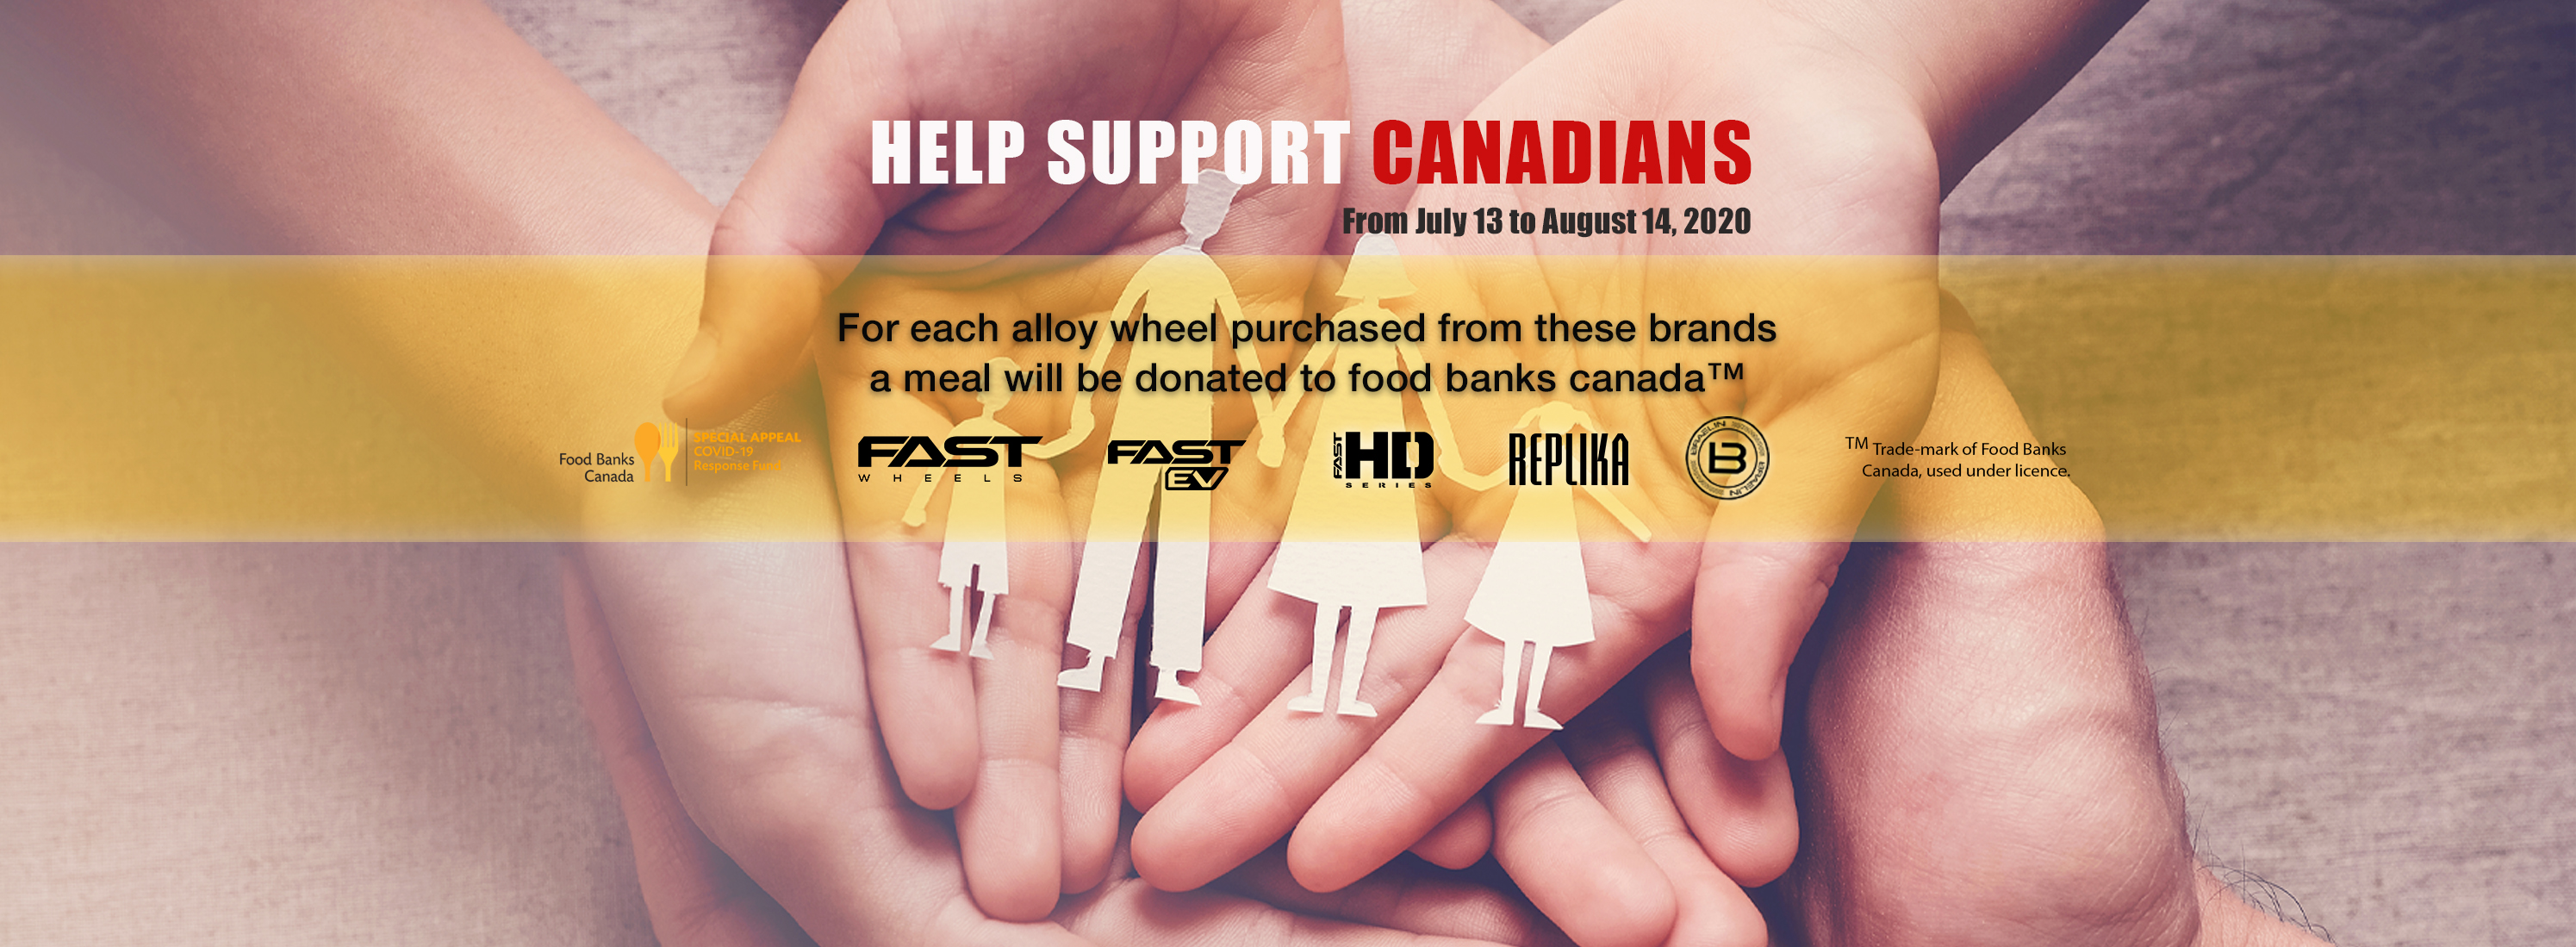 https://www.canadawheels.ca/fast-wheels